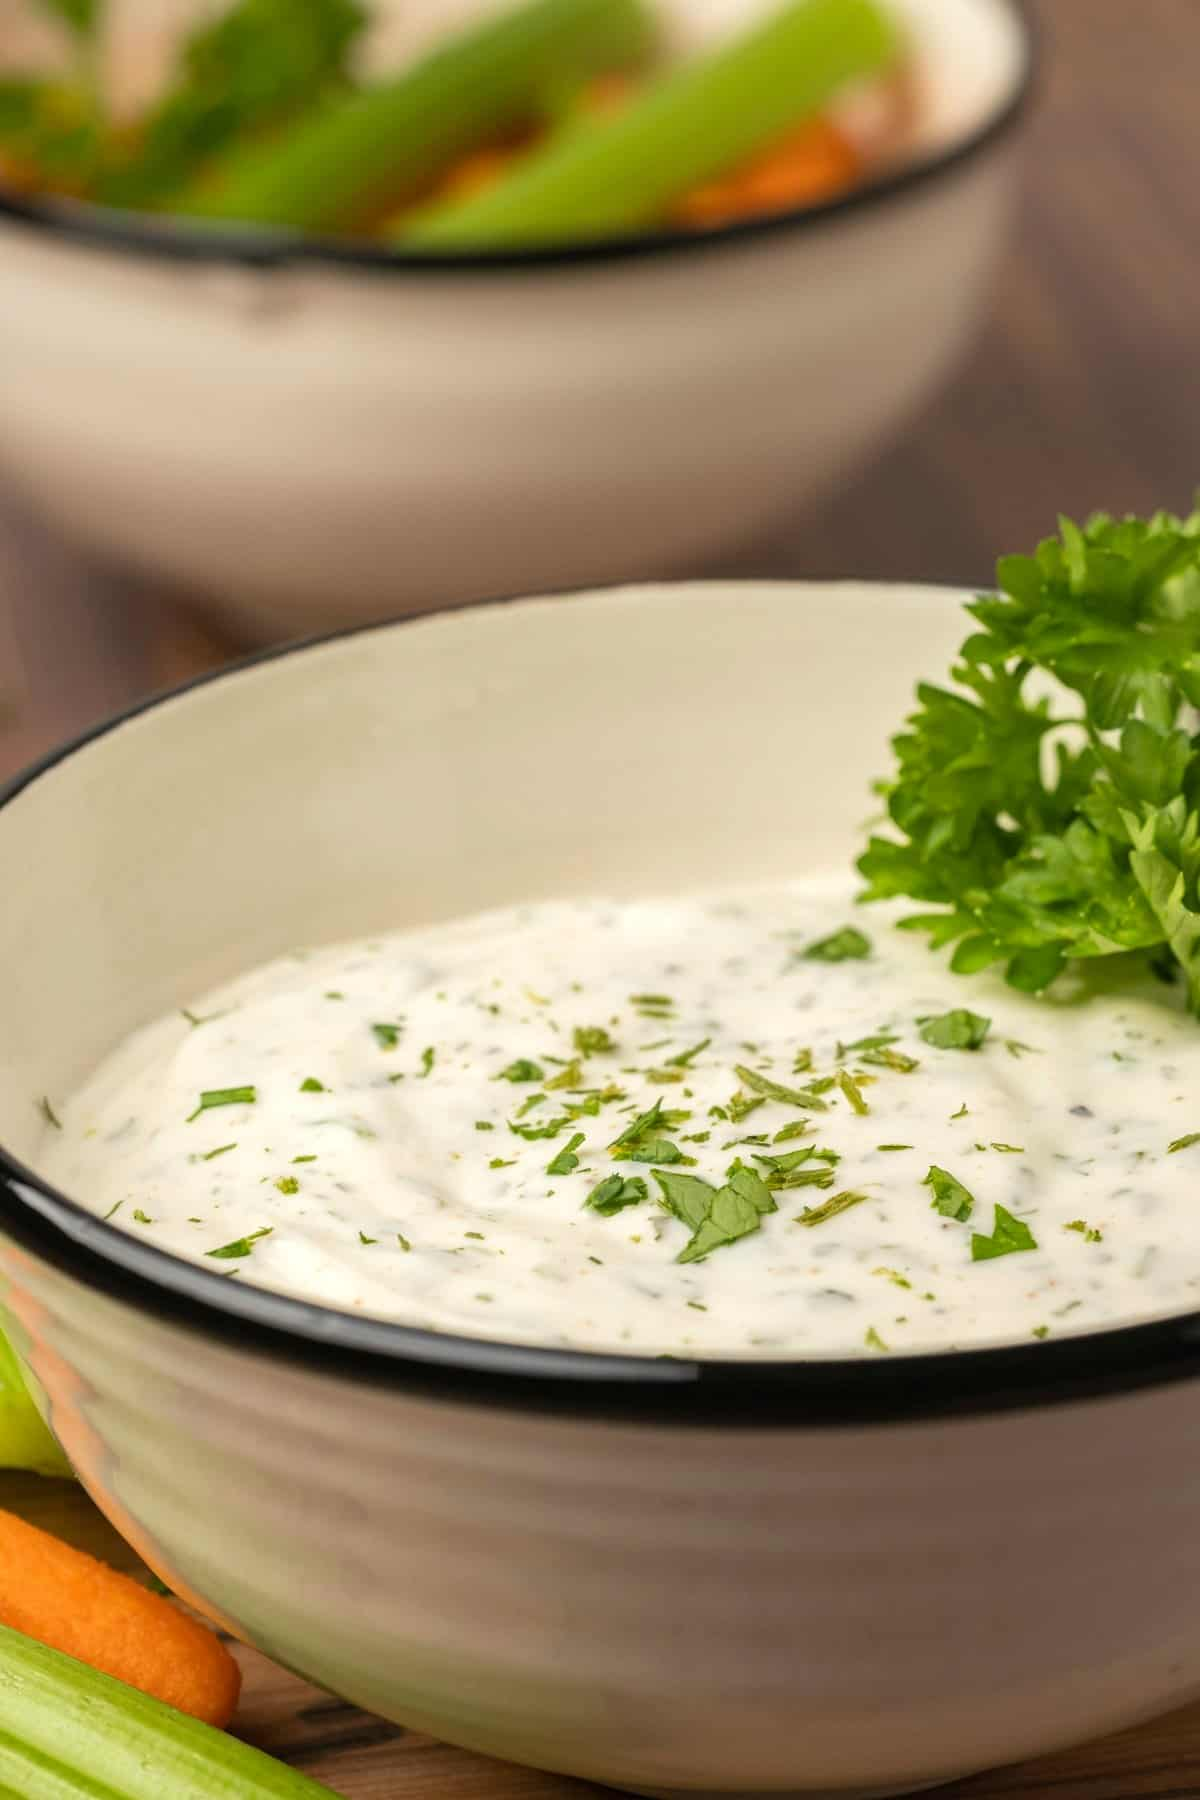 Ranch dressing topped with fresh parsley in a ceramic bowl.